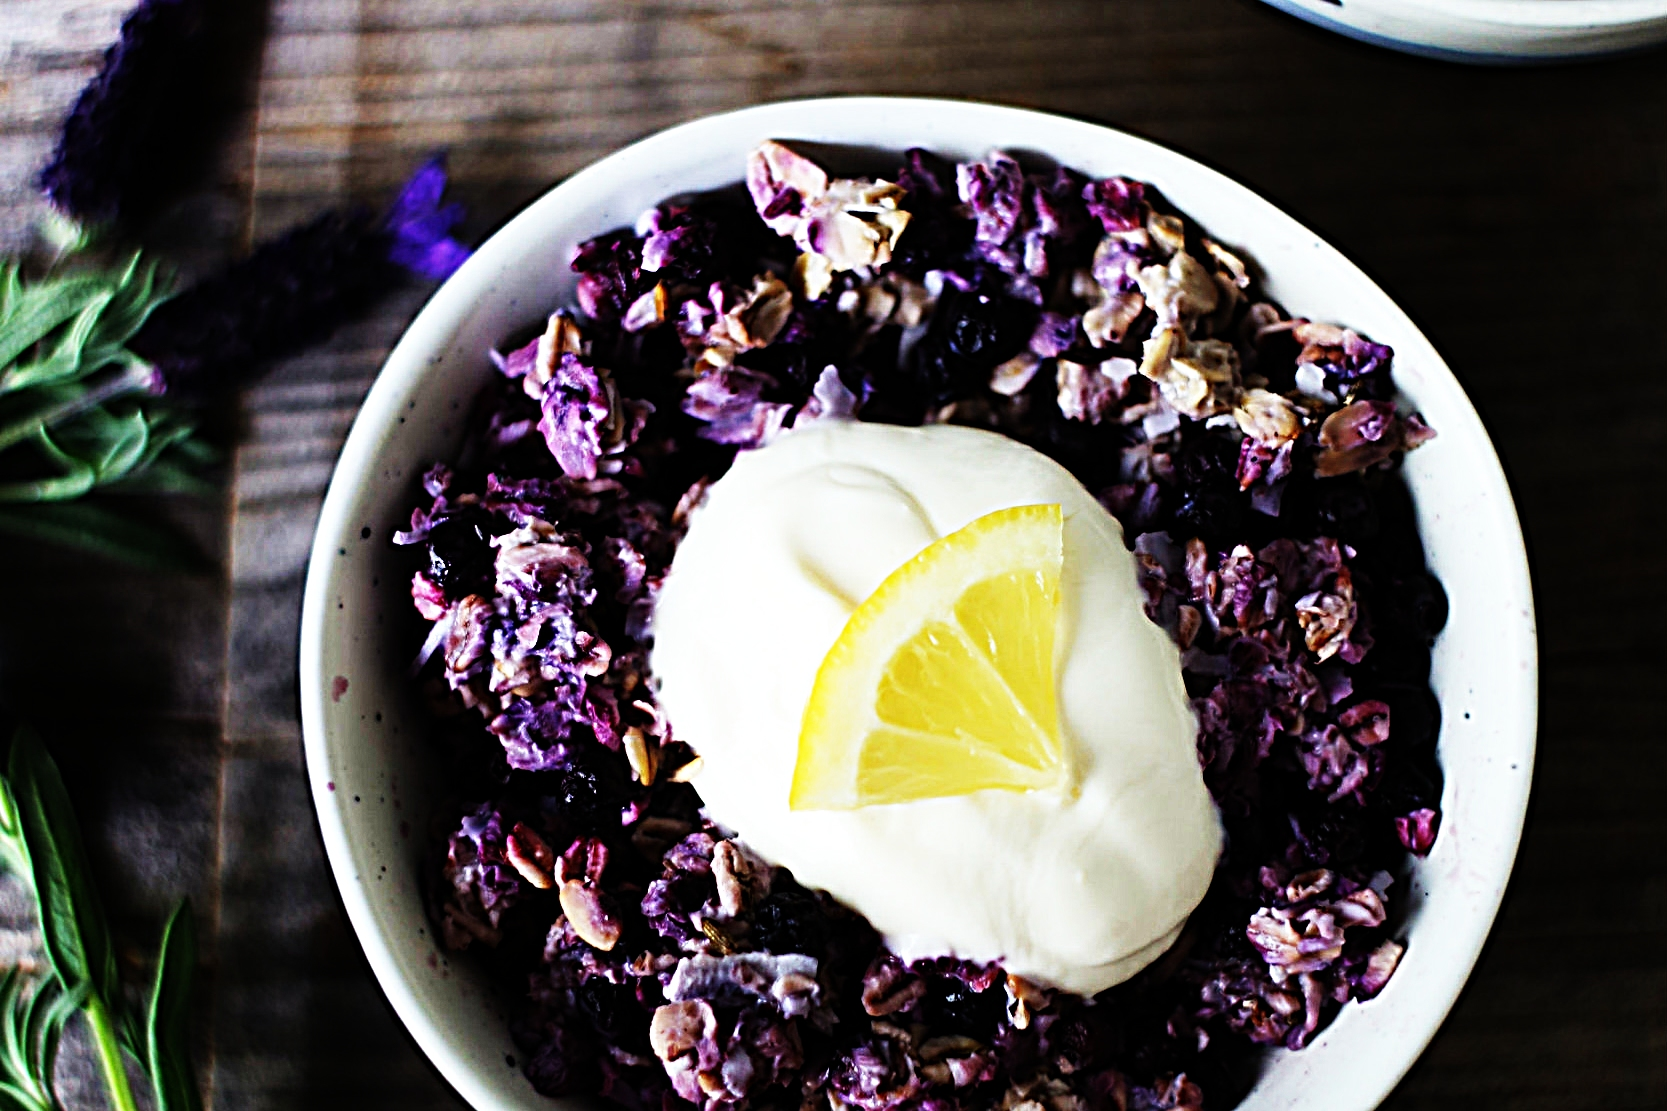 Stupid-Easy Recipe for Wild Blueberry-Lavender Overnight Oats (#1 Top-Rated)